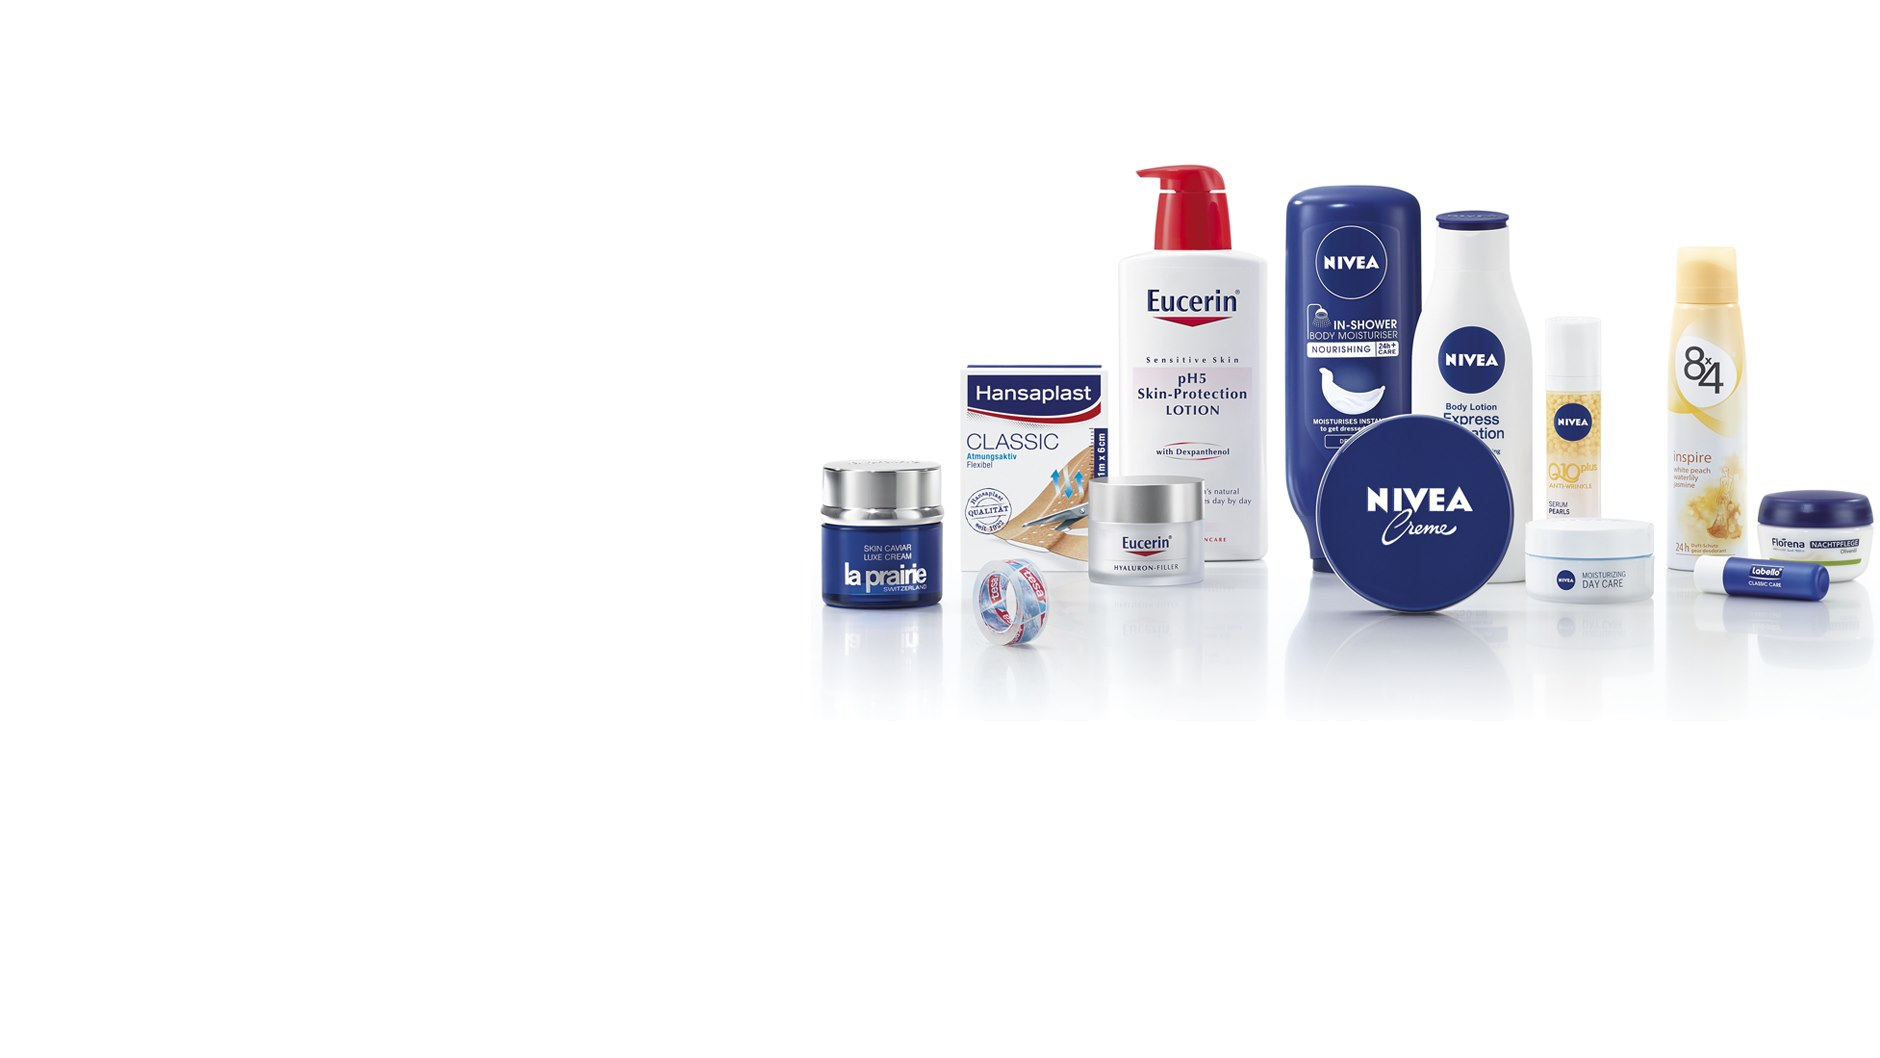 EXP on the packaging means the period of safe use of cosmetics